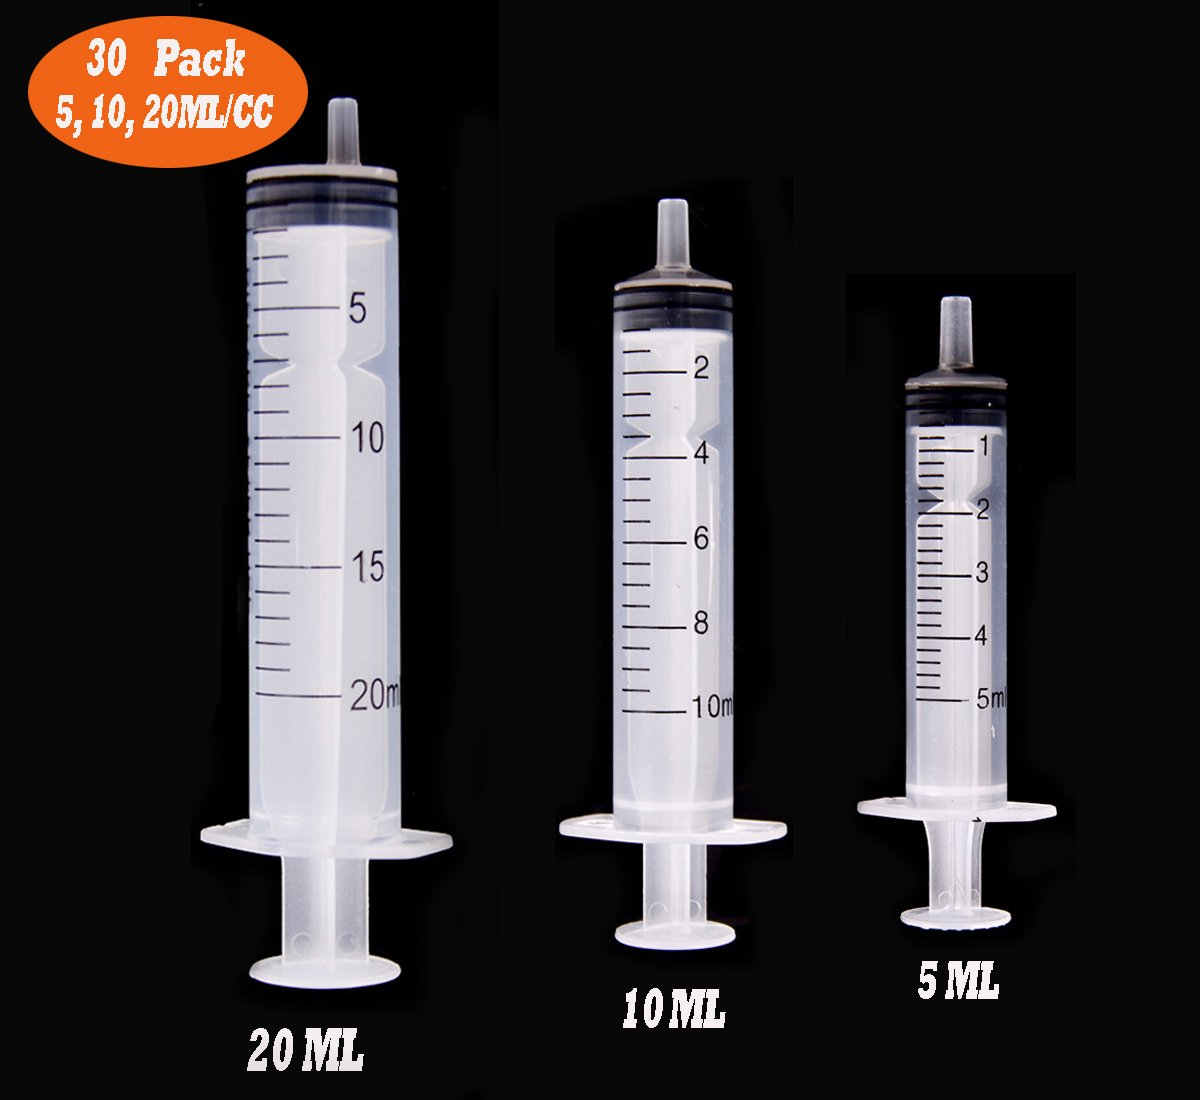 30 Pack 5ml/10ml/20ml Syringe, Buytra Plastic Syringe with Luer Slip Tip, No Needle, Non Sterile- Ideal for Measuring or Transfering Tiny Amount of Liquids(Without Cap) by Buytra